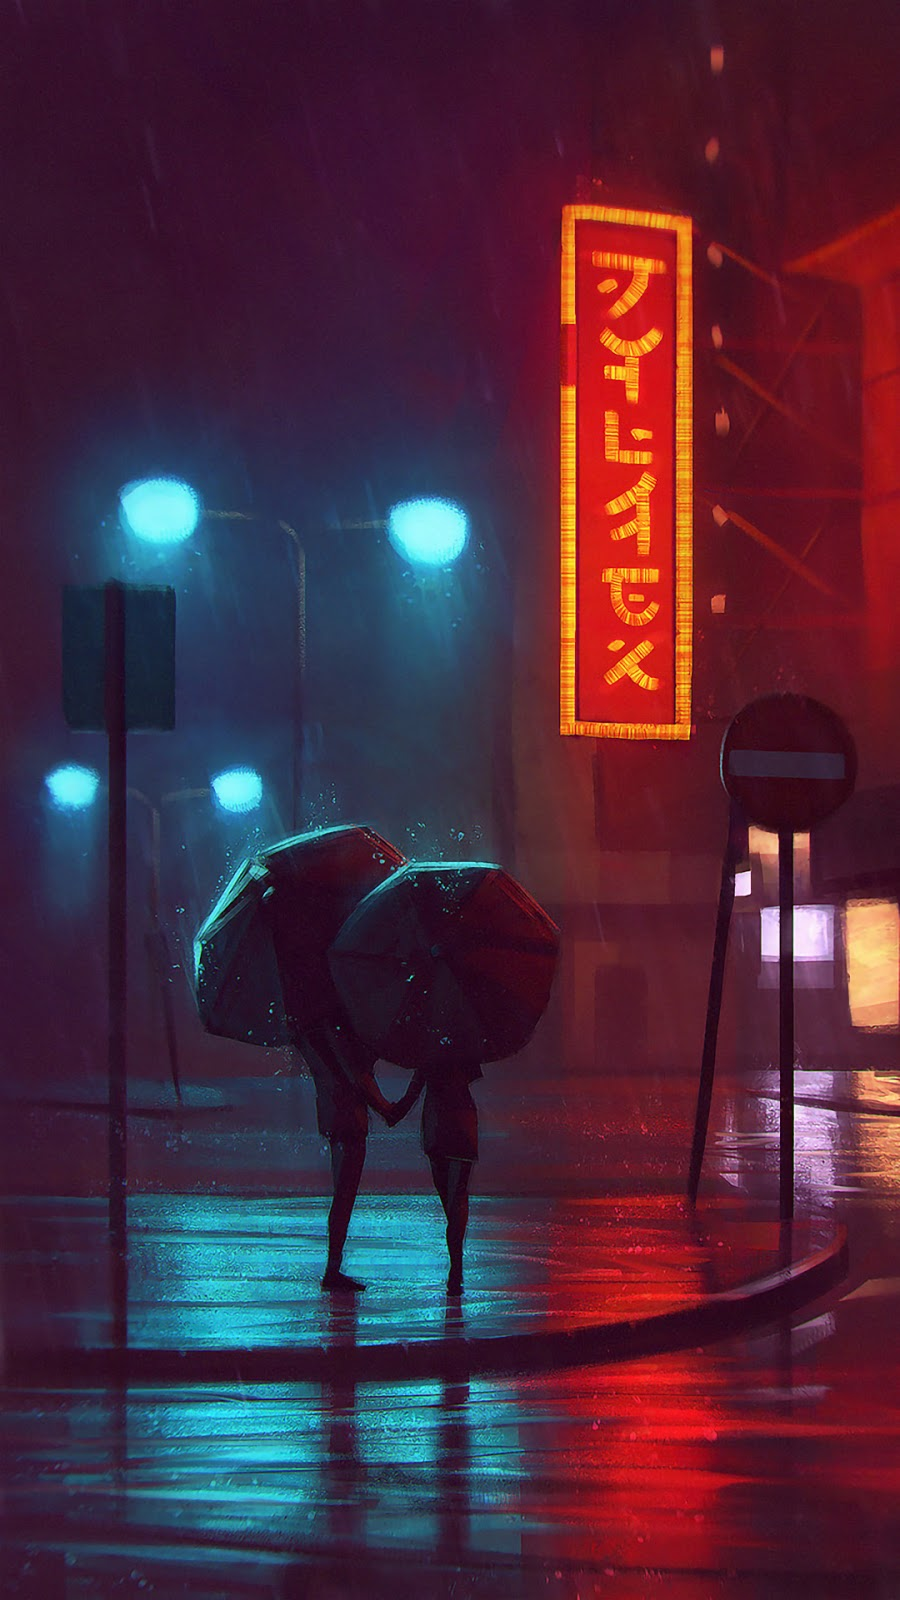 umbrella rain cyberpunk